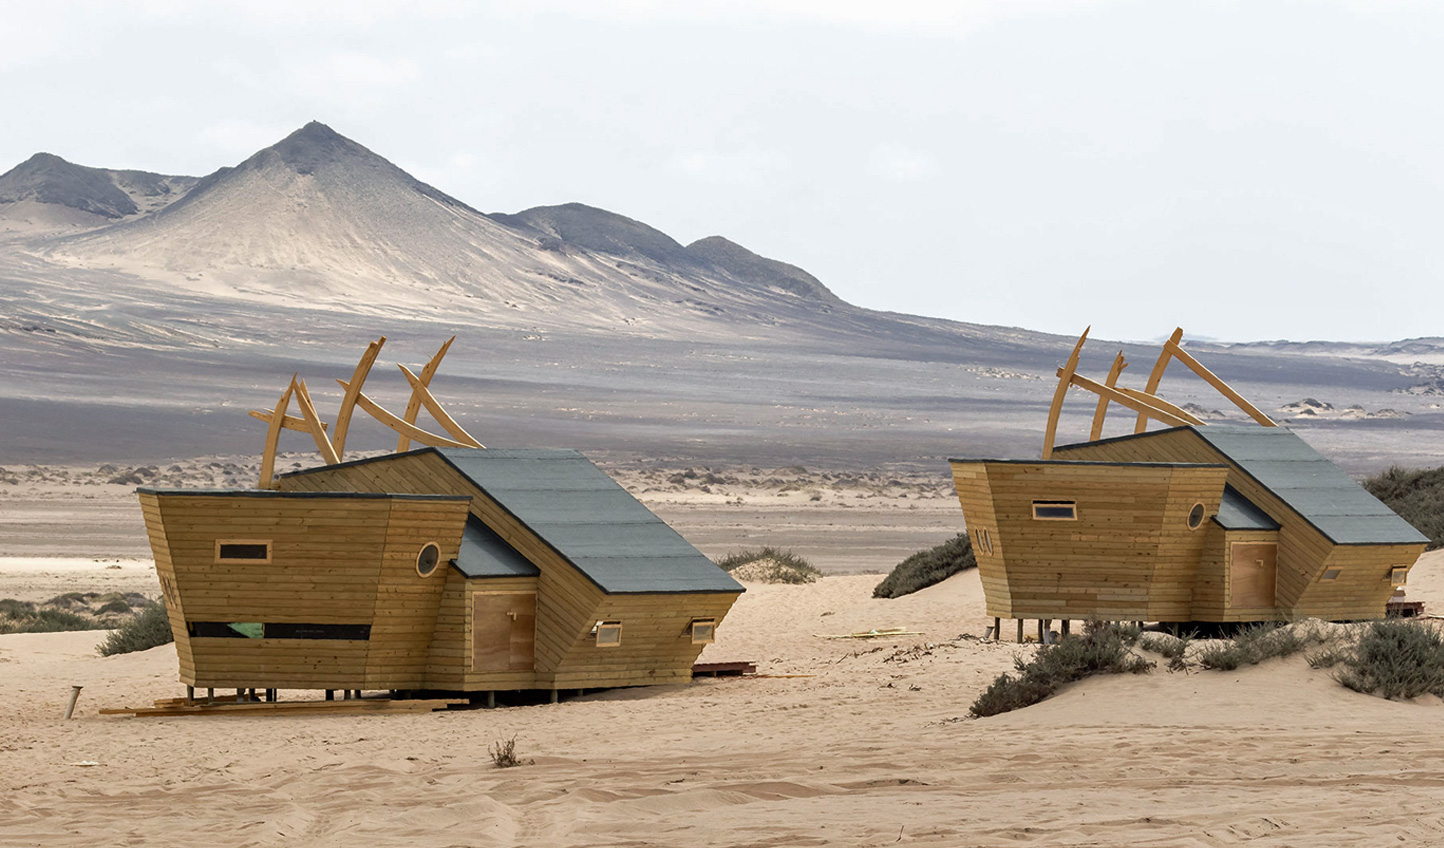 Nestled amid the dunes of the Skeleton Coast